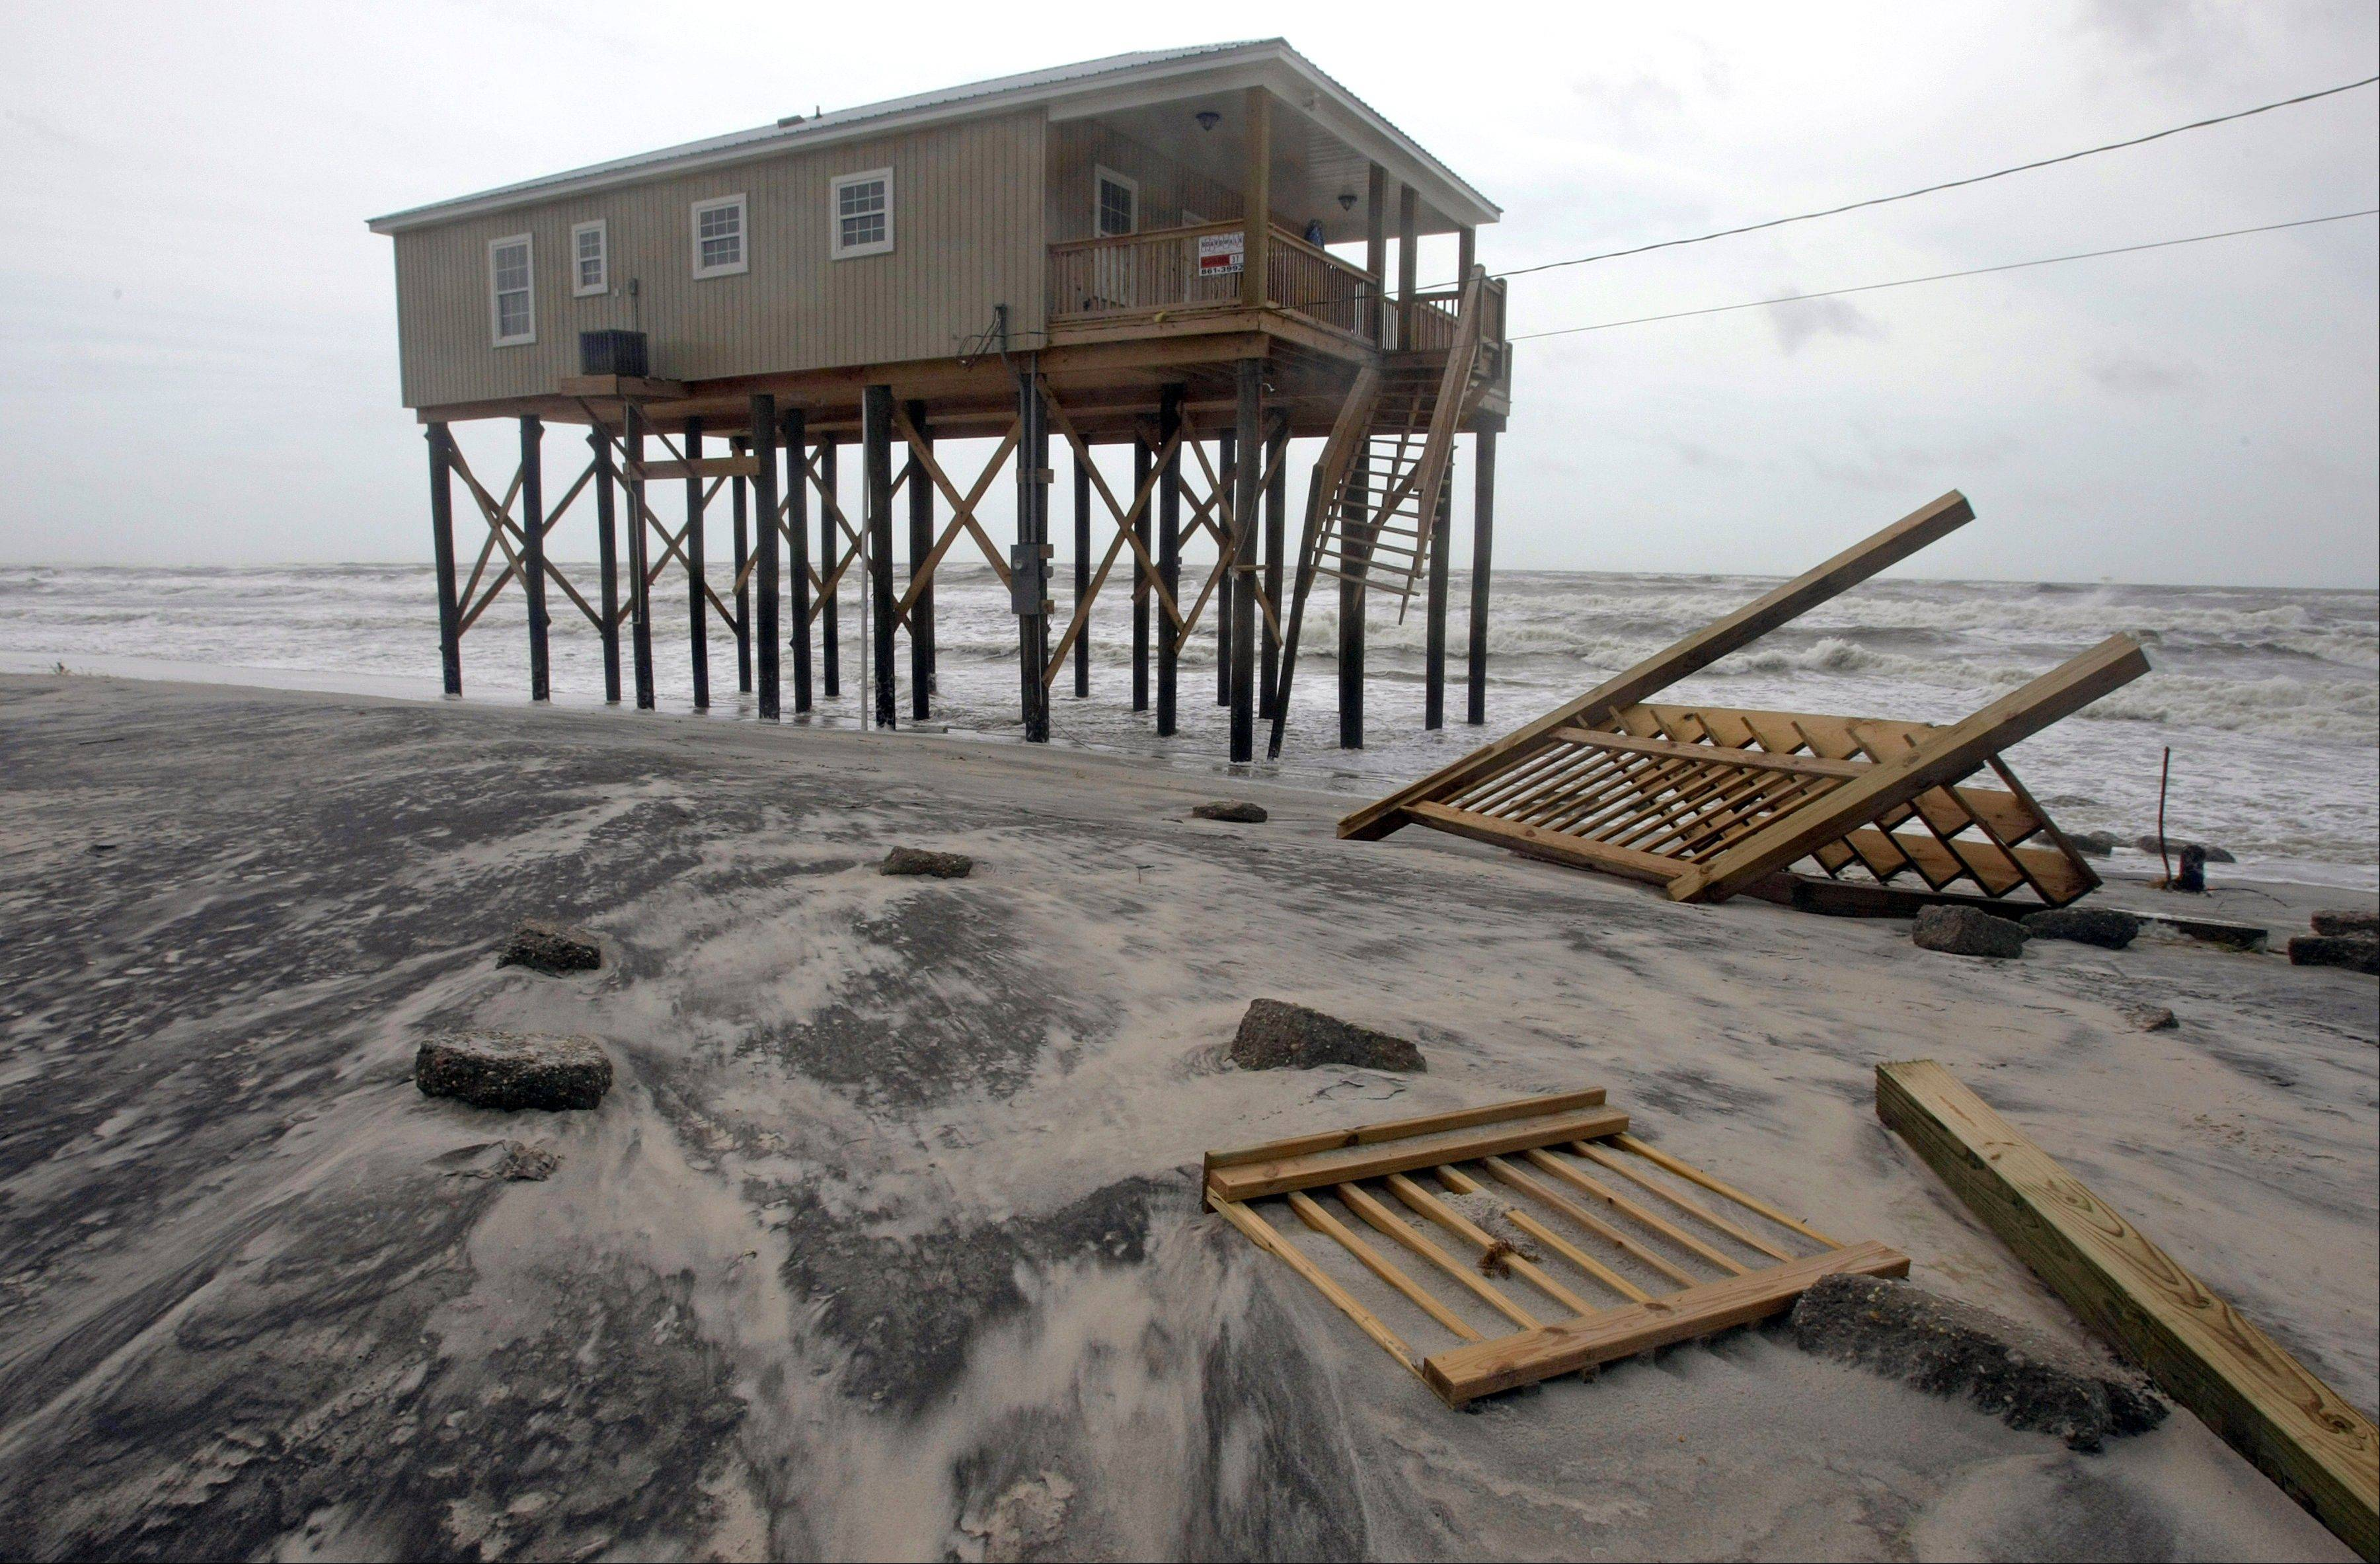 The staircase for a home now lies smashed in the sands in front of the structure Thursday, Aug. 30, 2012 on Dauphin Island, Ala. after Hurricane Isaac's landfall in Louisiana.